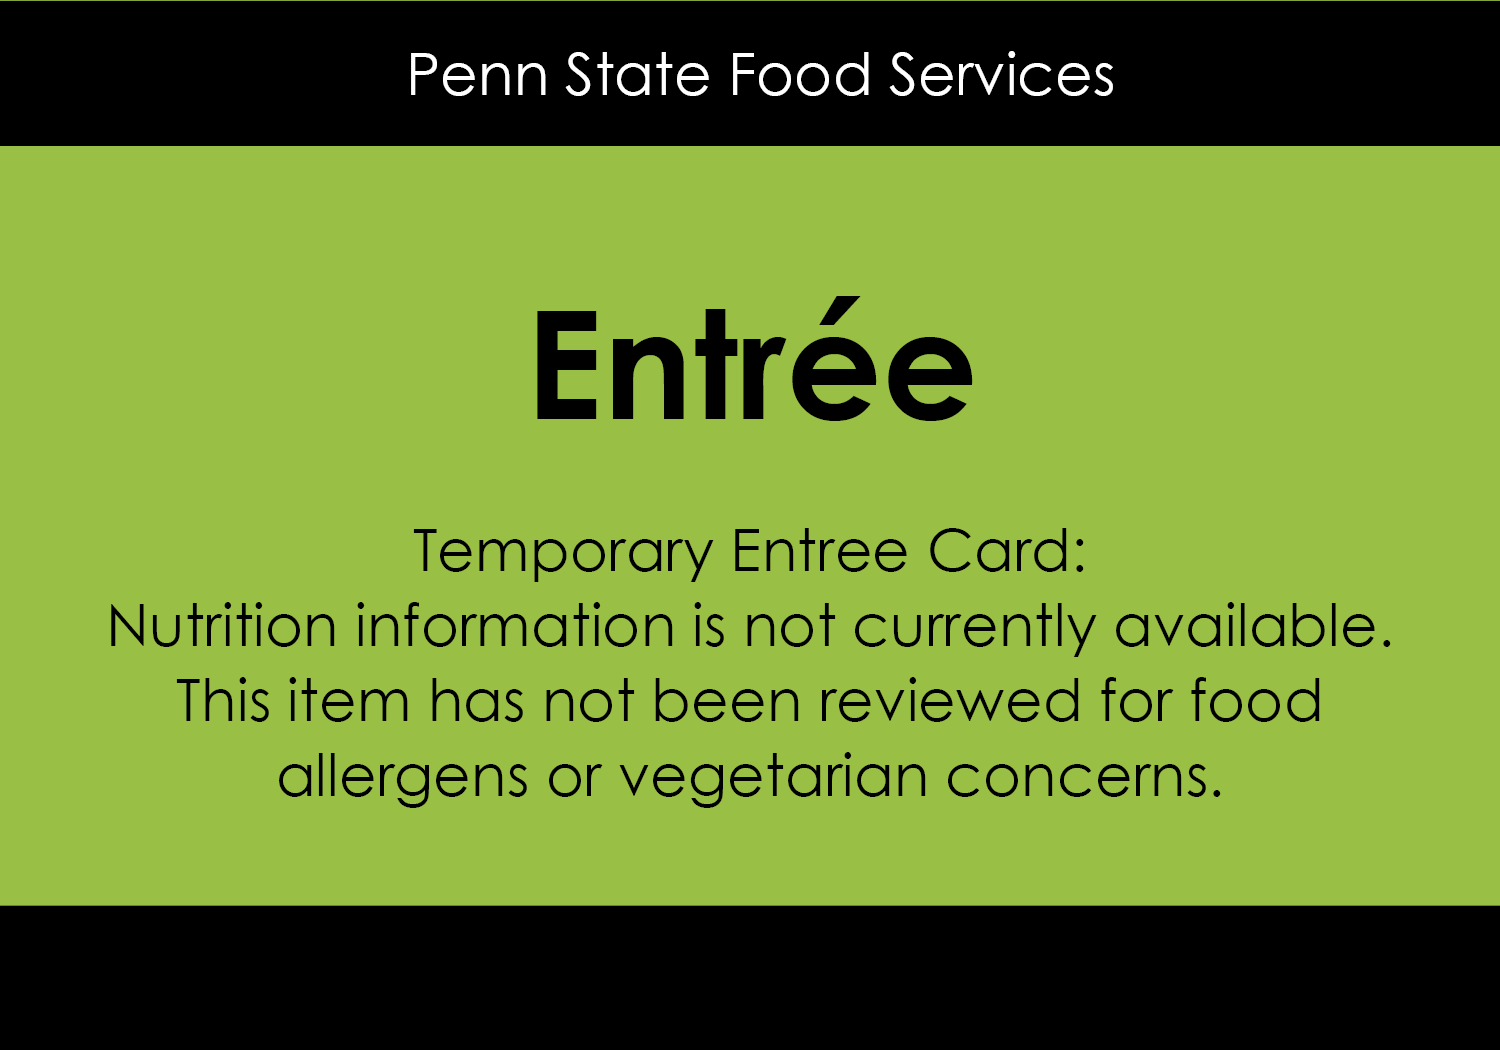 Sample of a temporary entree card found in Penn State dining locations